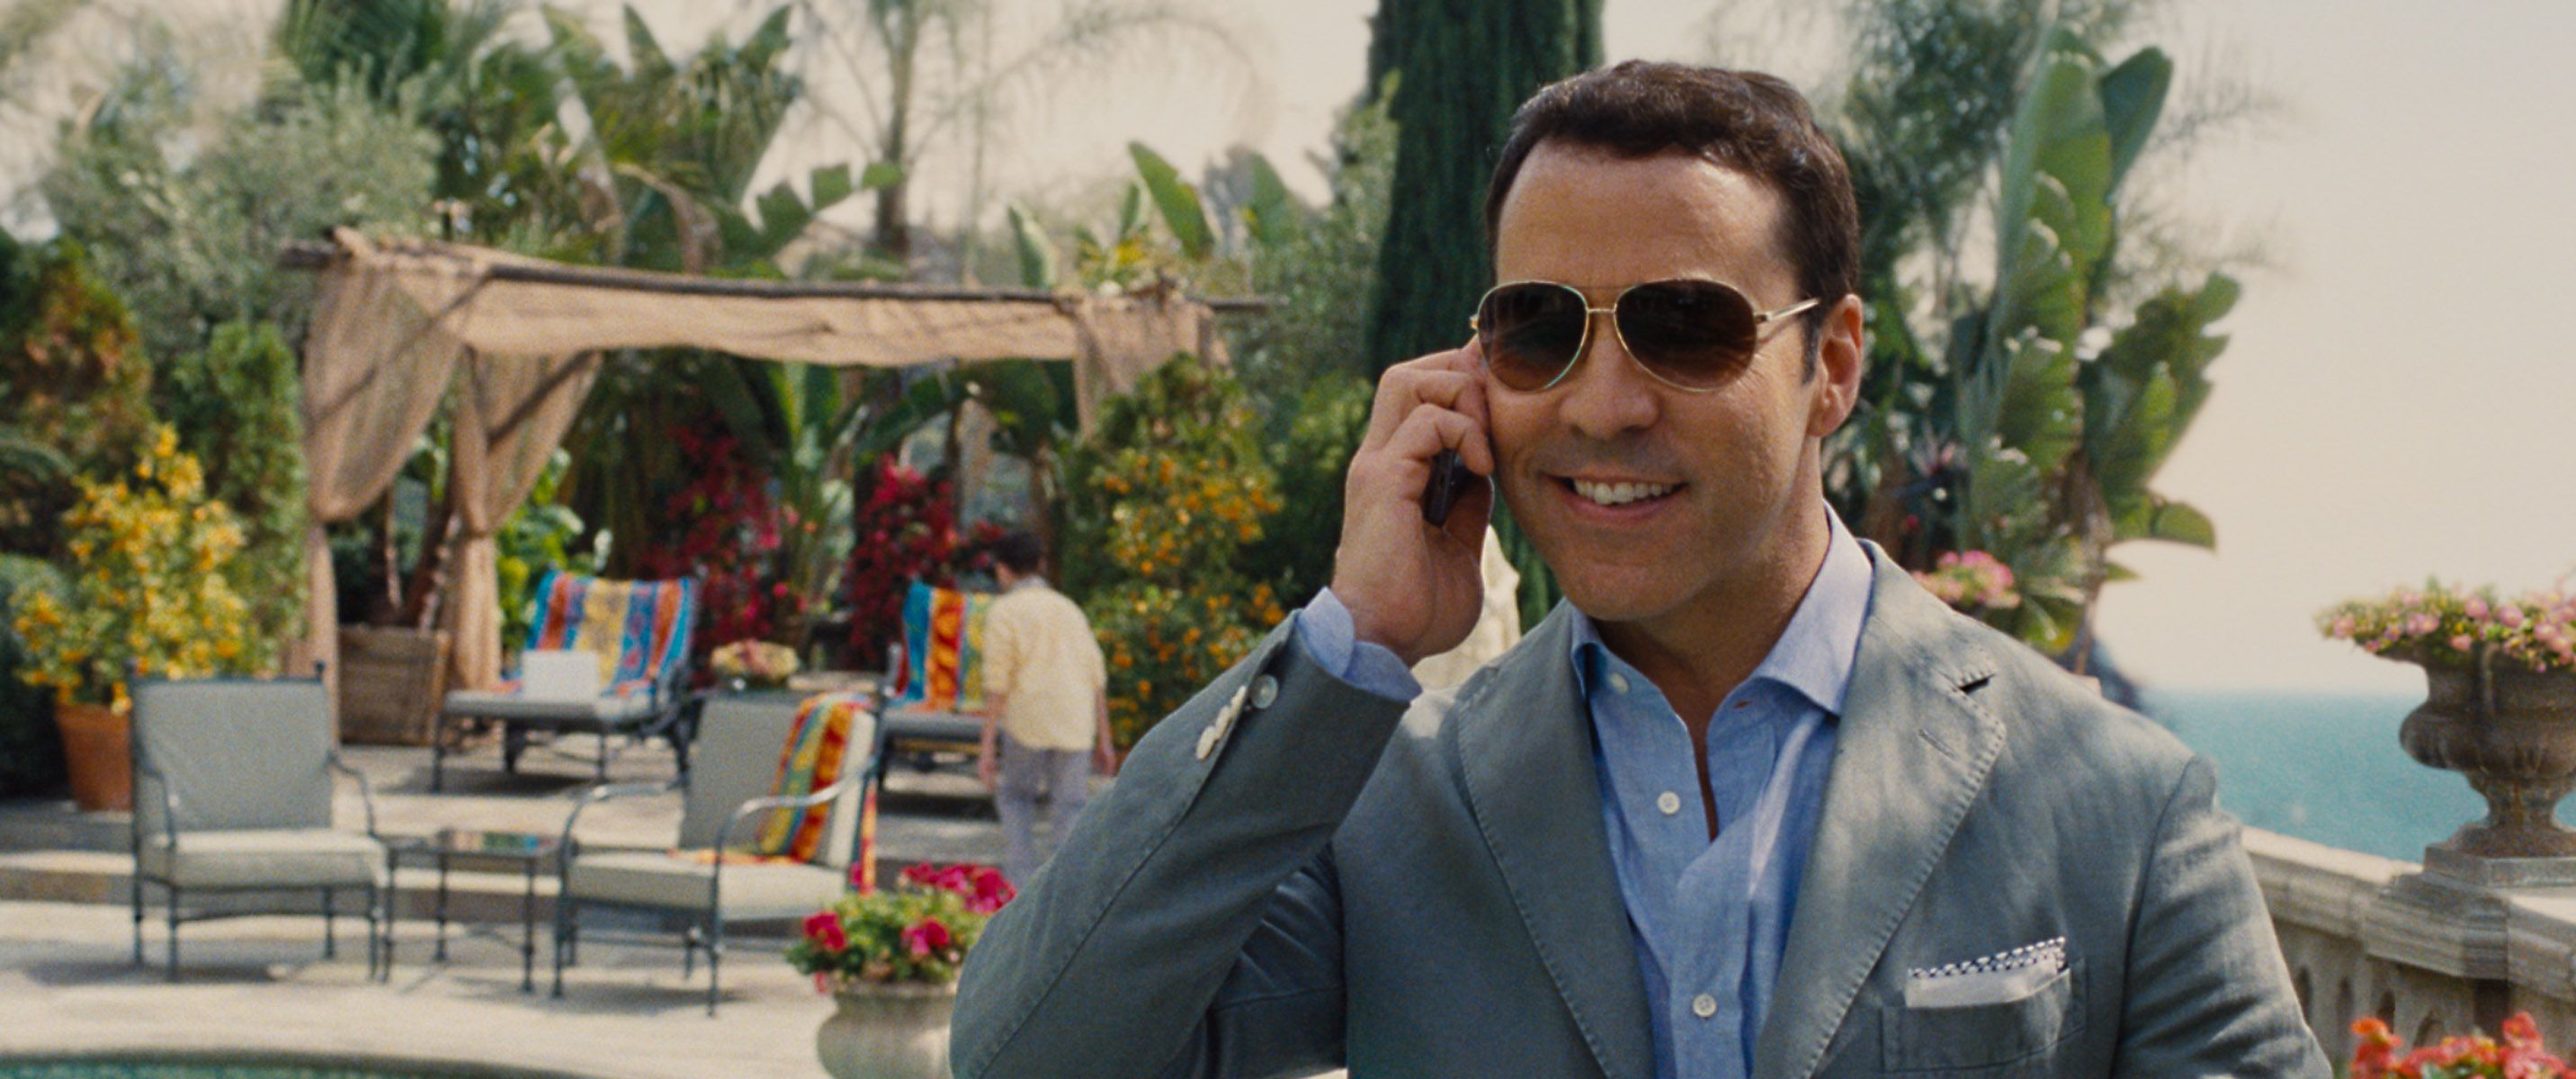 Entourage: Ari Gold Featurette